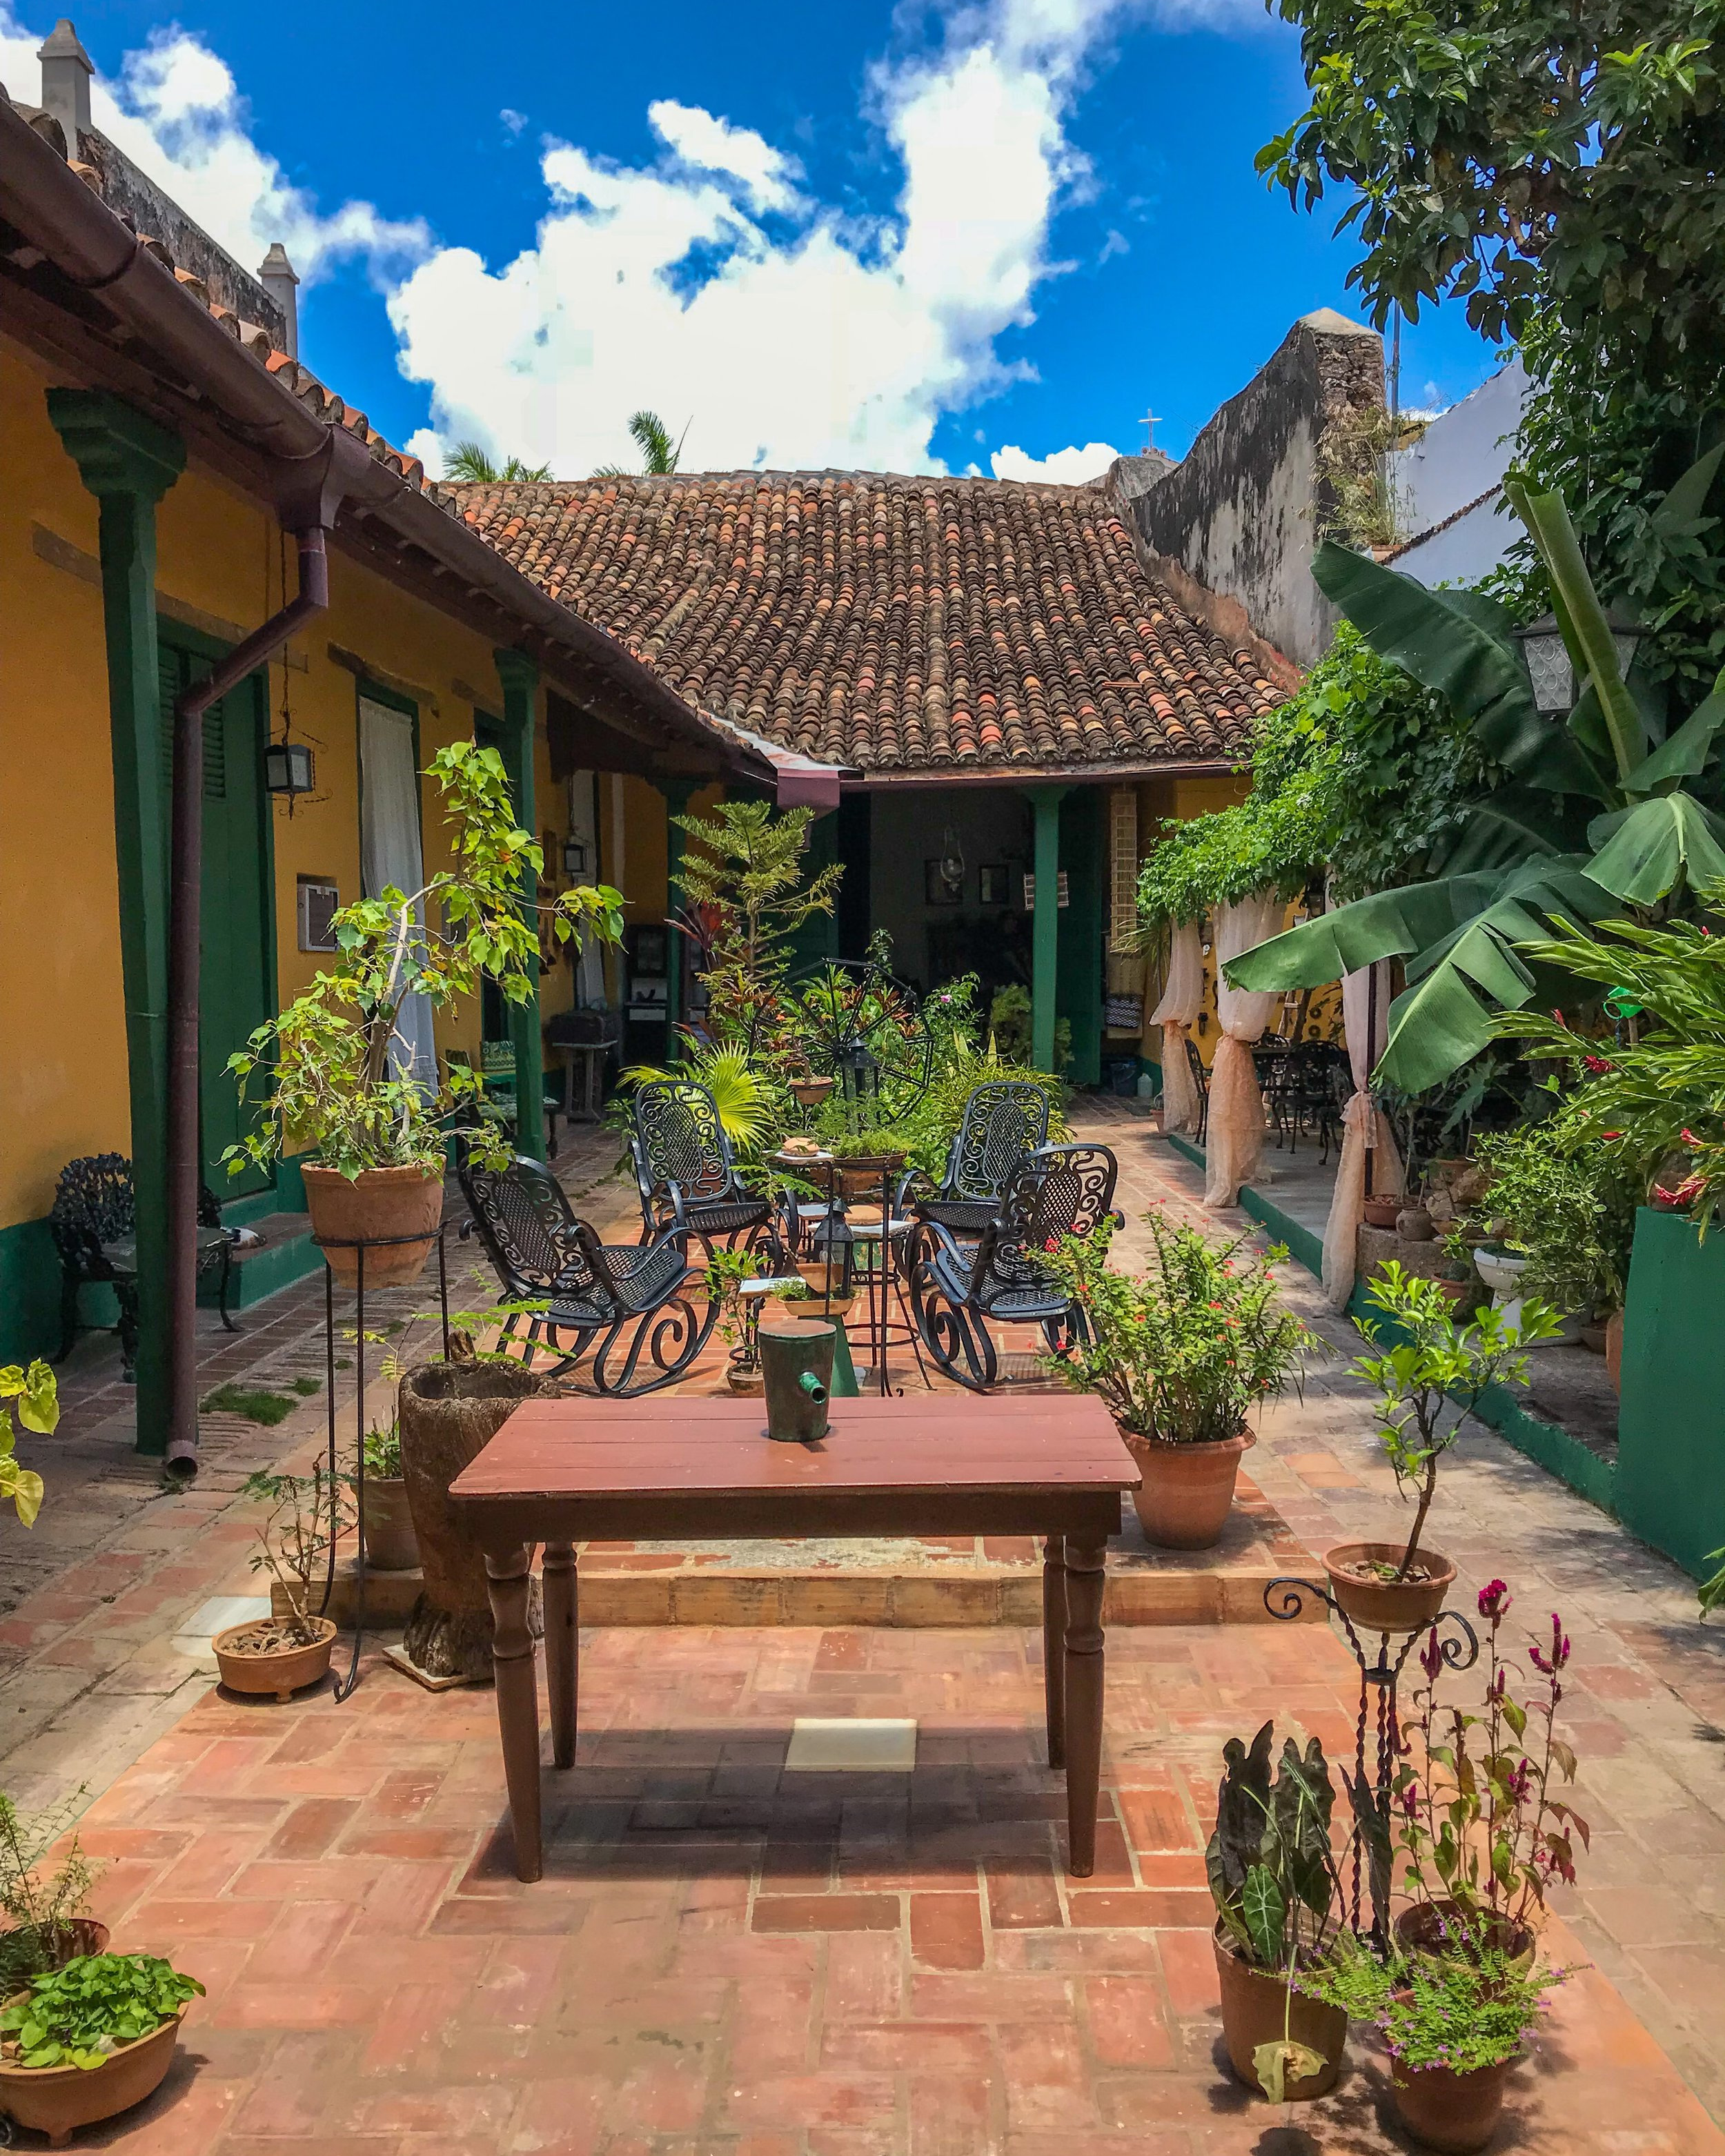 Casa Particular Cuba Trinidad Read This Before Booking An Airbnb In Cuba Escapingny